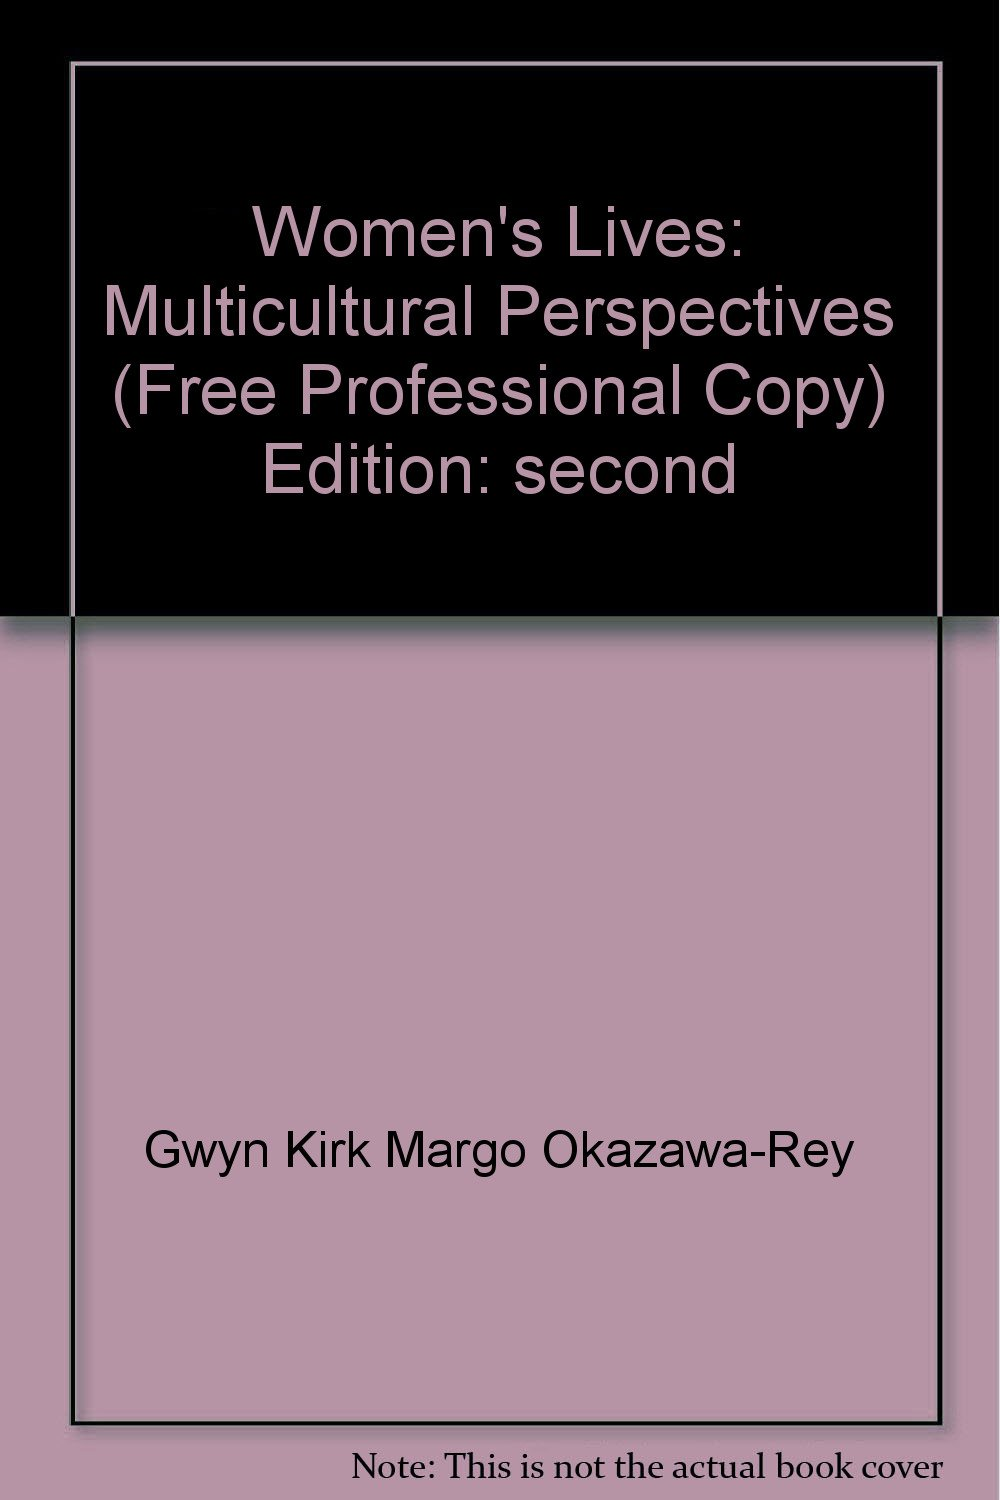 Women's Lives (Multicultural Perspectives) PDF